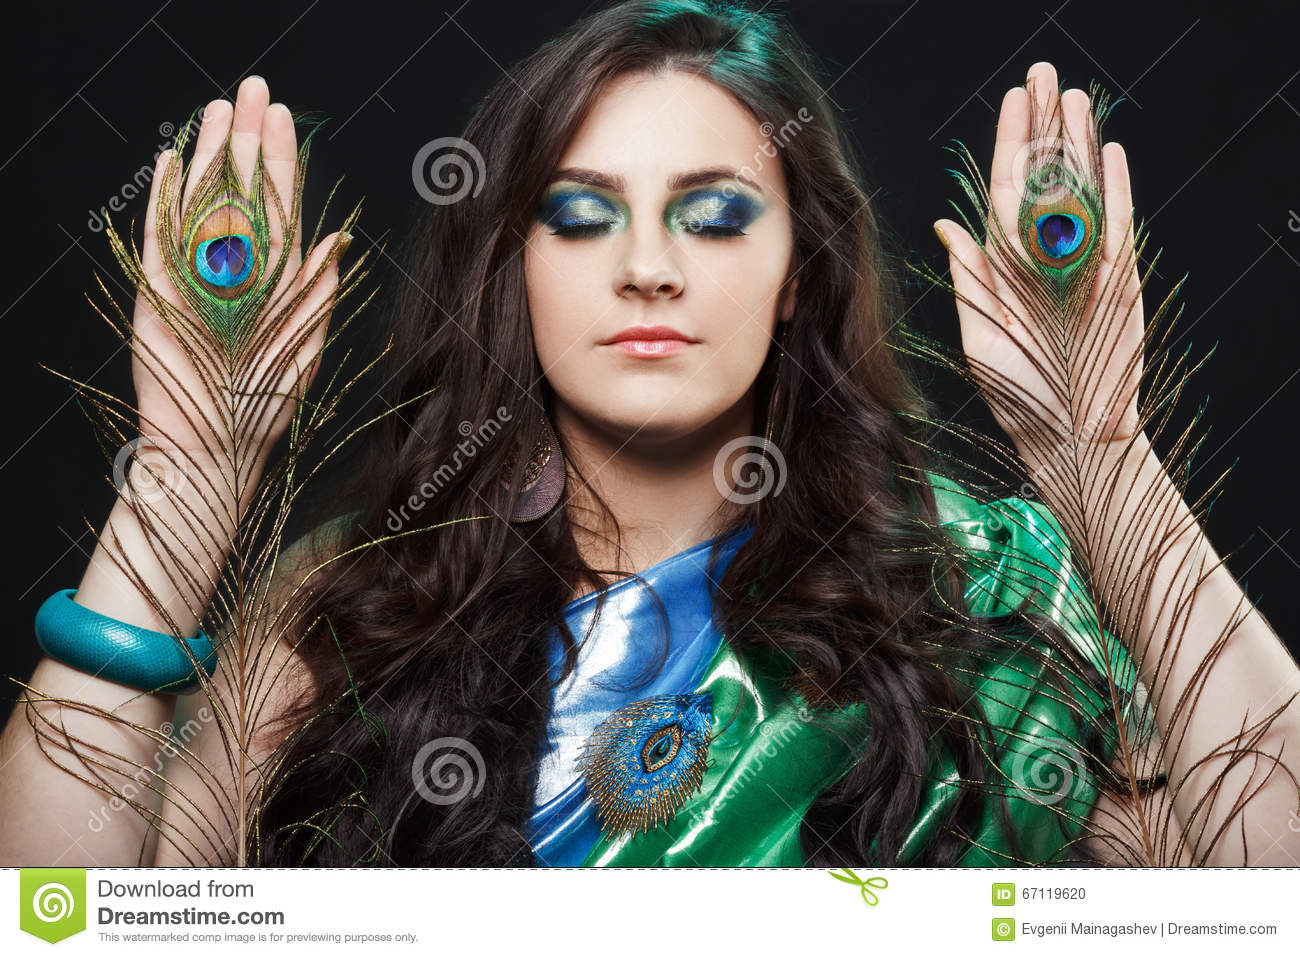 Psychic abilities psychics communicate with spirits. Beauty portrait of girl holding peacock feathers, bright clothes